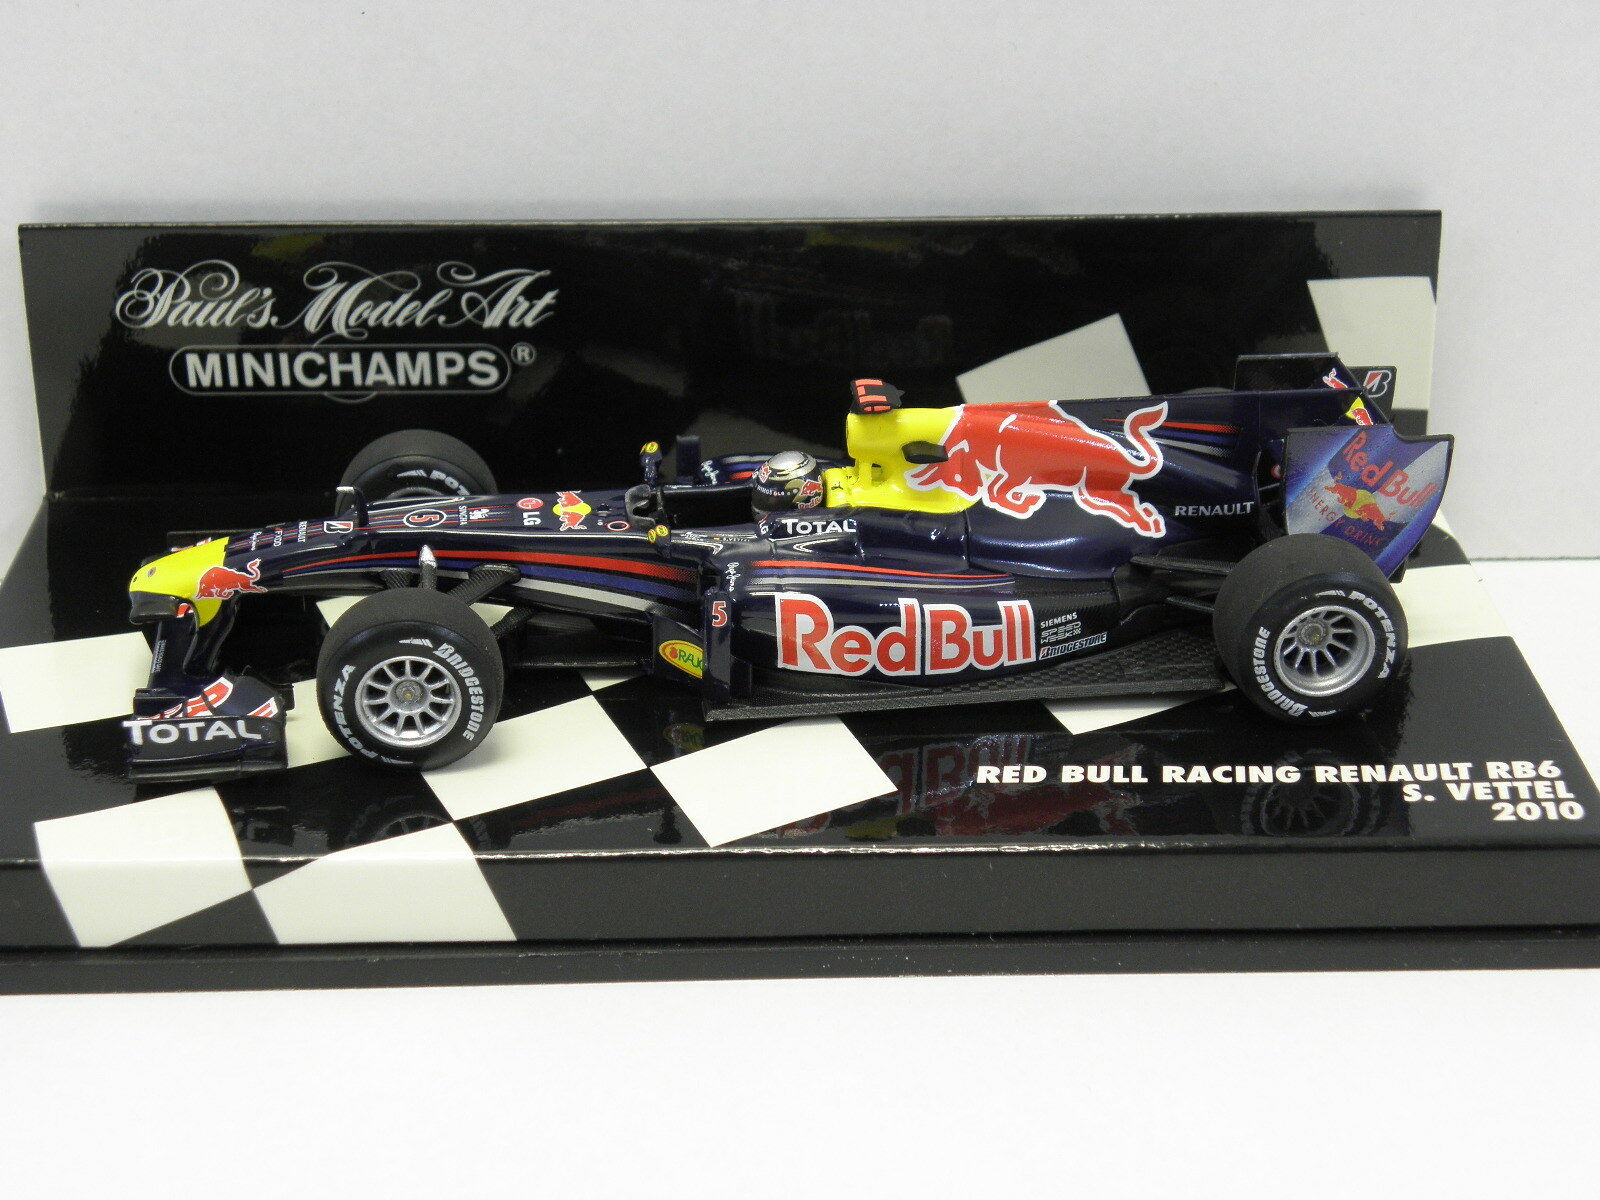 MINICHAMPS 410100005 Standmodell rot BULL RACING RENAULT RB6 Vettel 2010 M.1 43  | Passend In Der Farbe